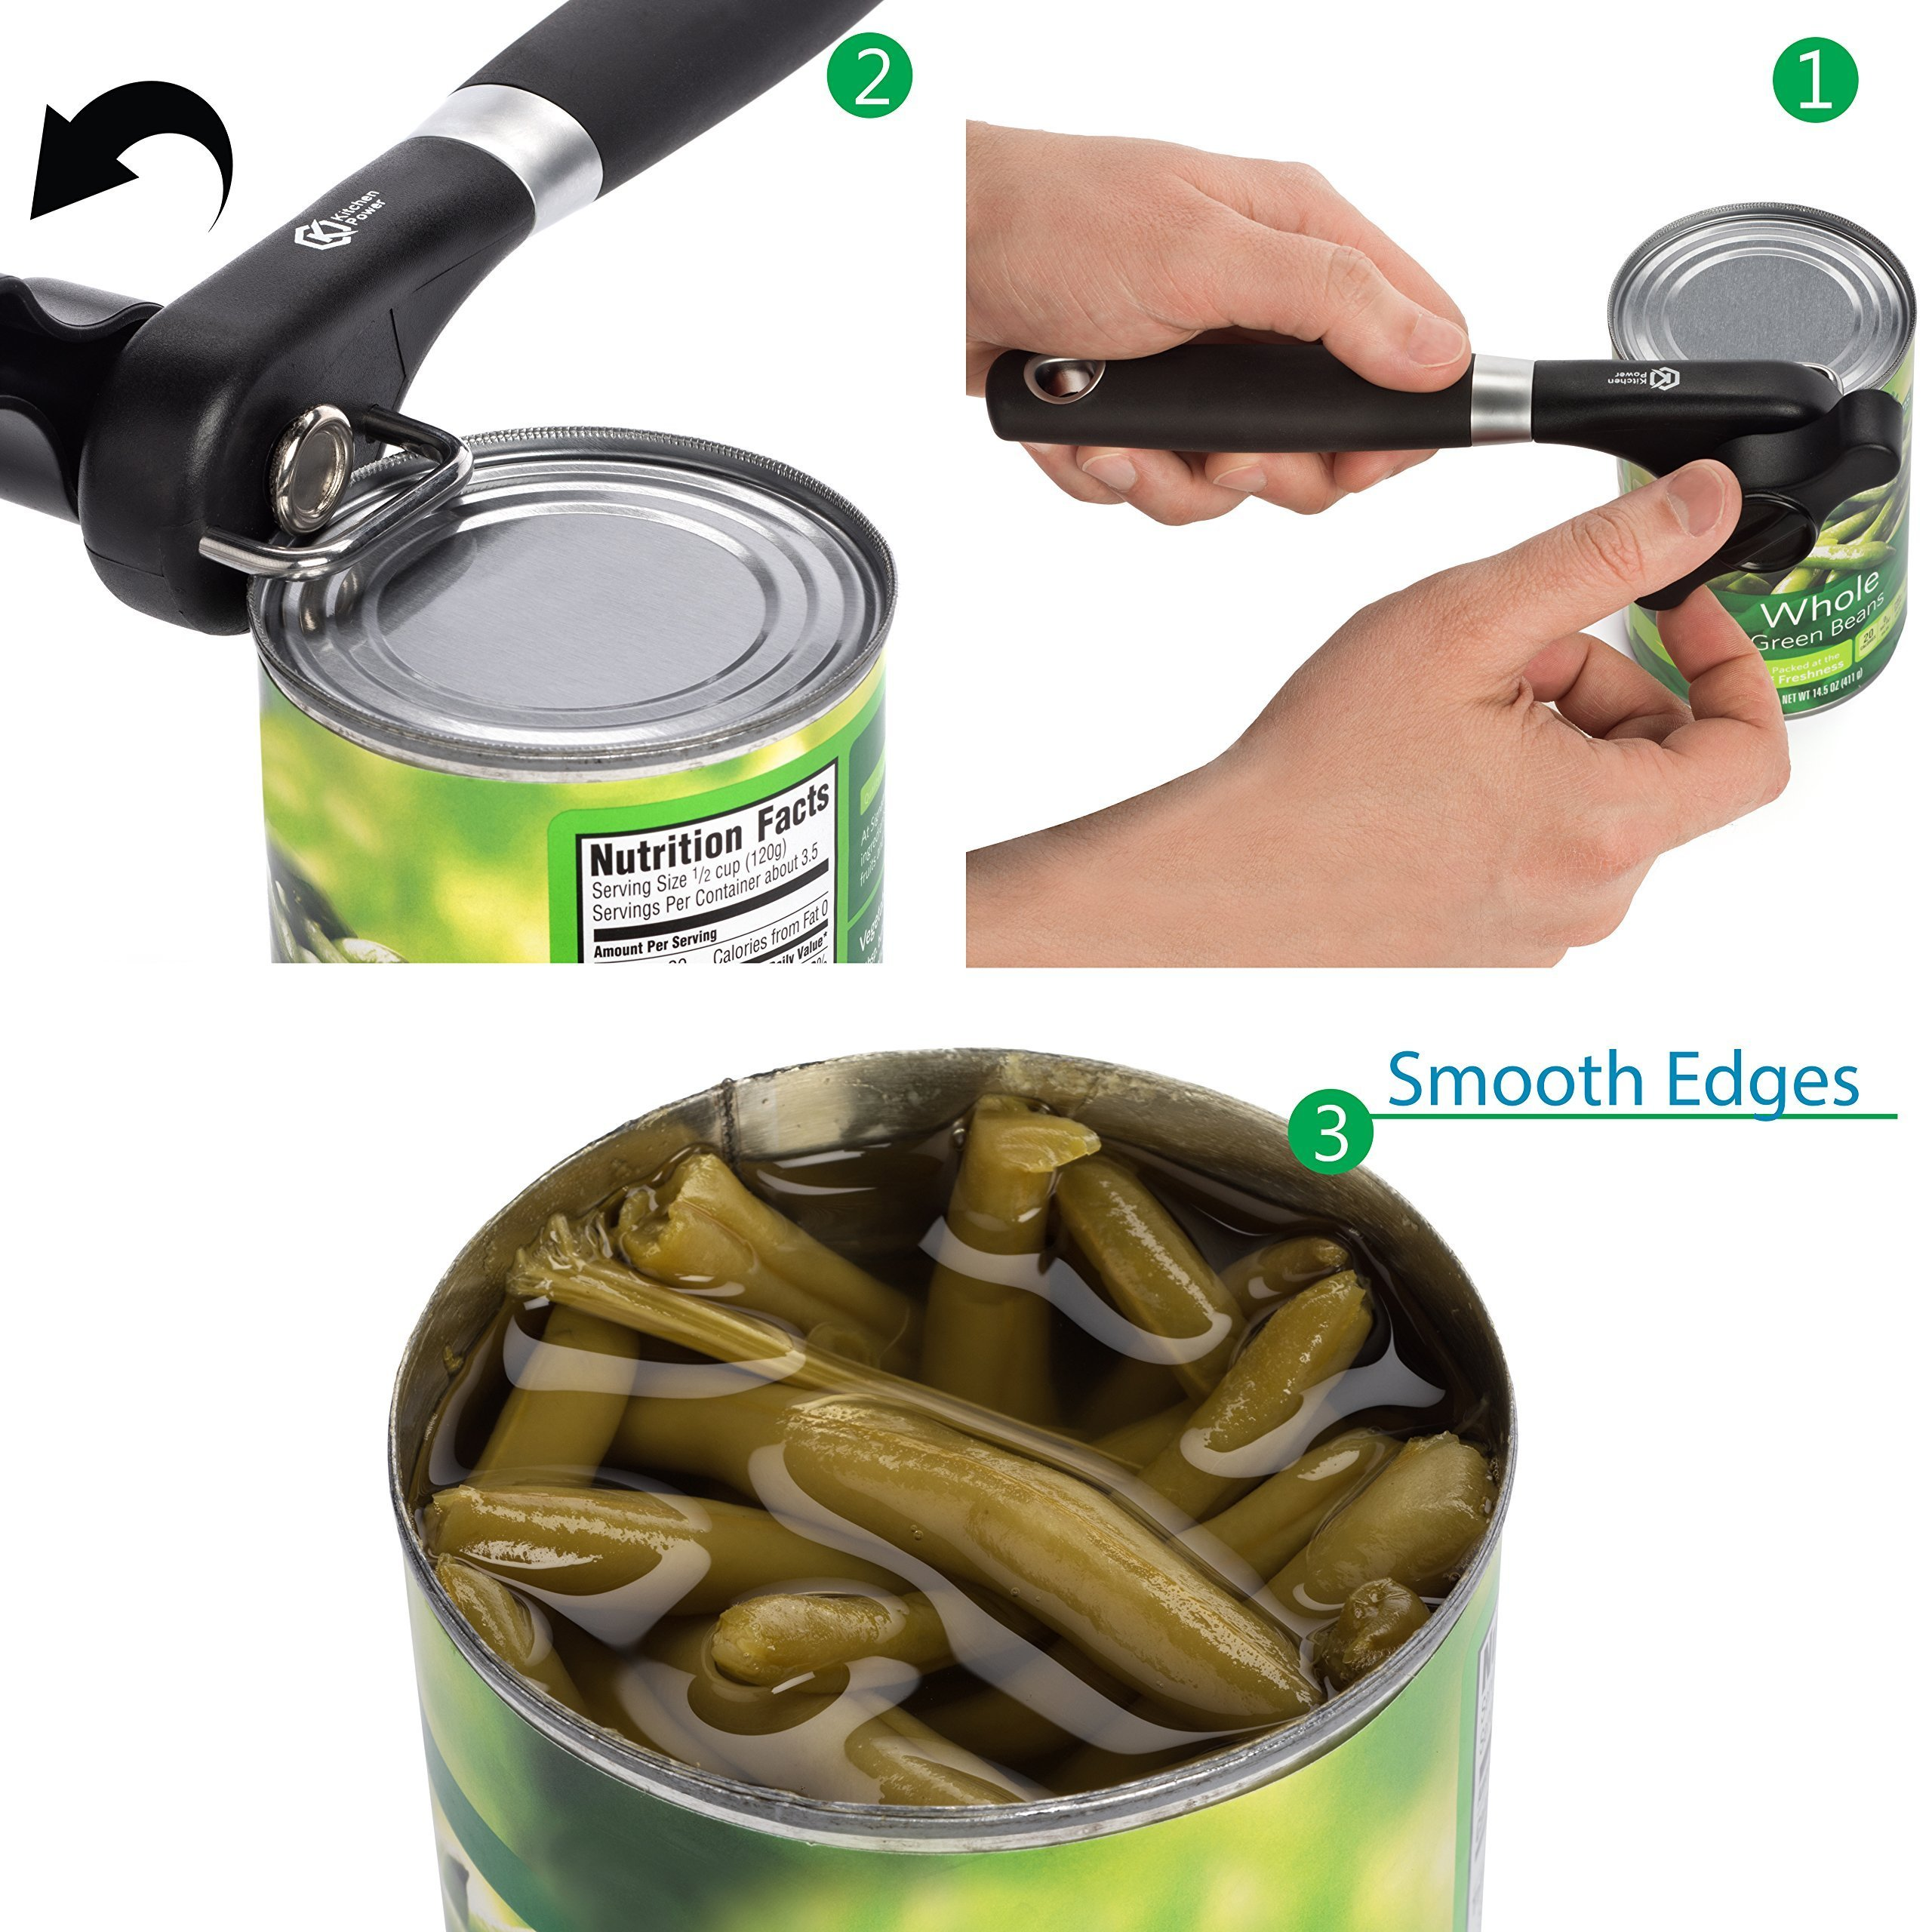 Kitchen Power Manual Food Safe Stainless Steel Can Opener with Ergonomic Non Slip Handle Sharp Cutting Wheel for Smooth Edges-Portable Lid Lifter by Kitchen Power (Image #3)